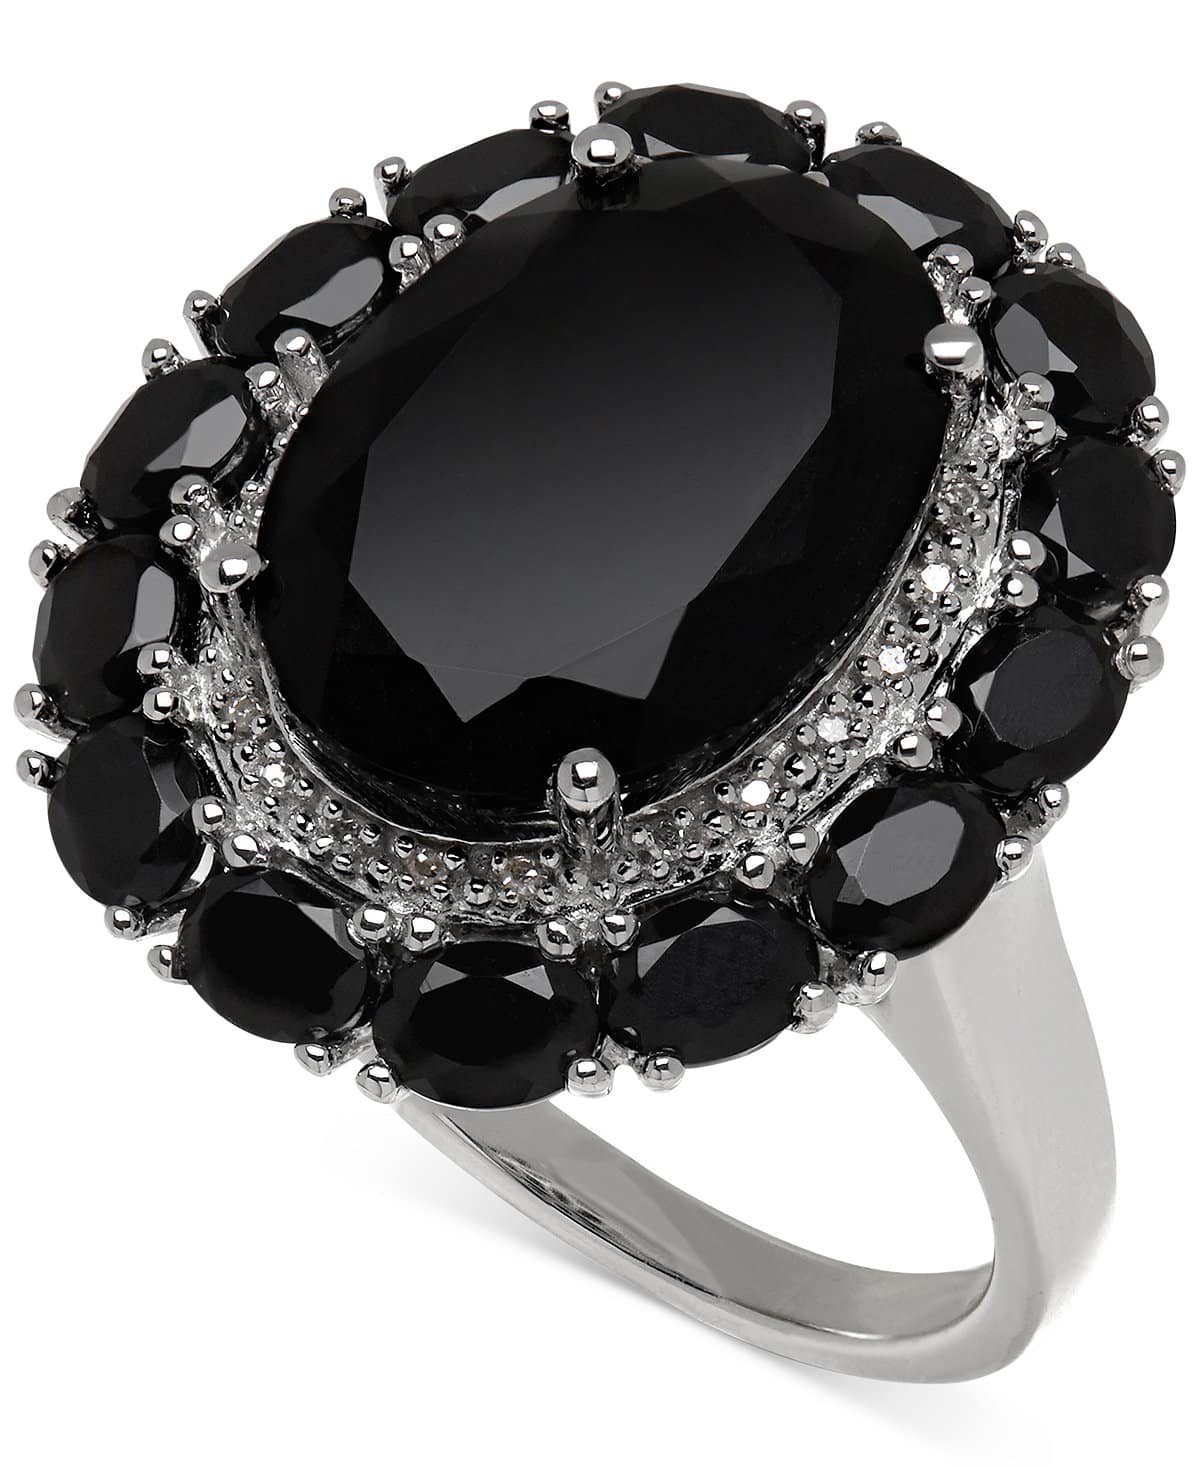 Macy's: Onyx and Diamond Accent Ring in Sterling Silver $58.99 + Free Shipping